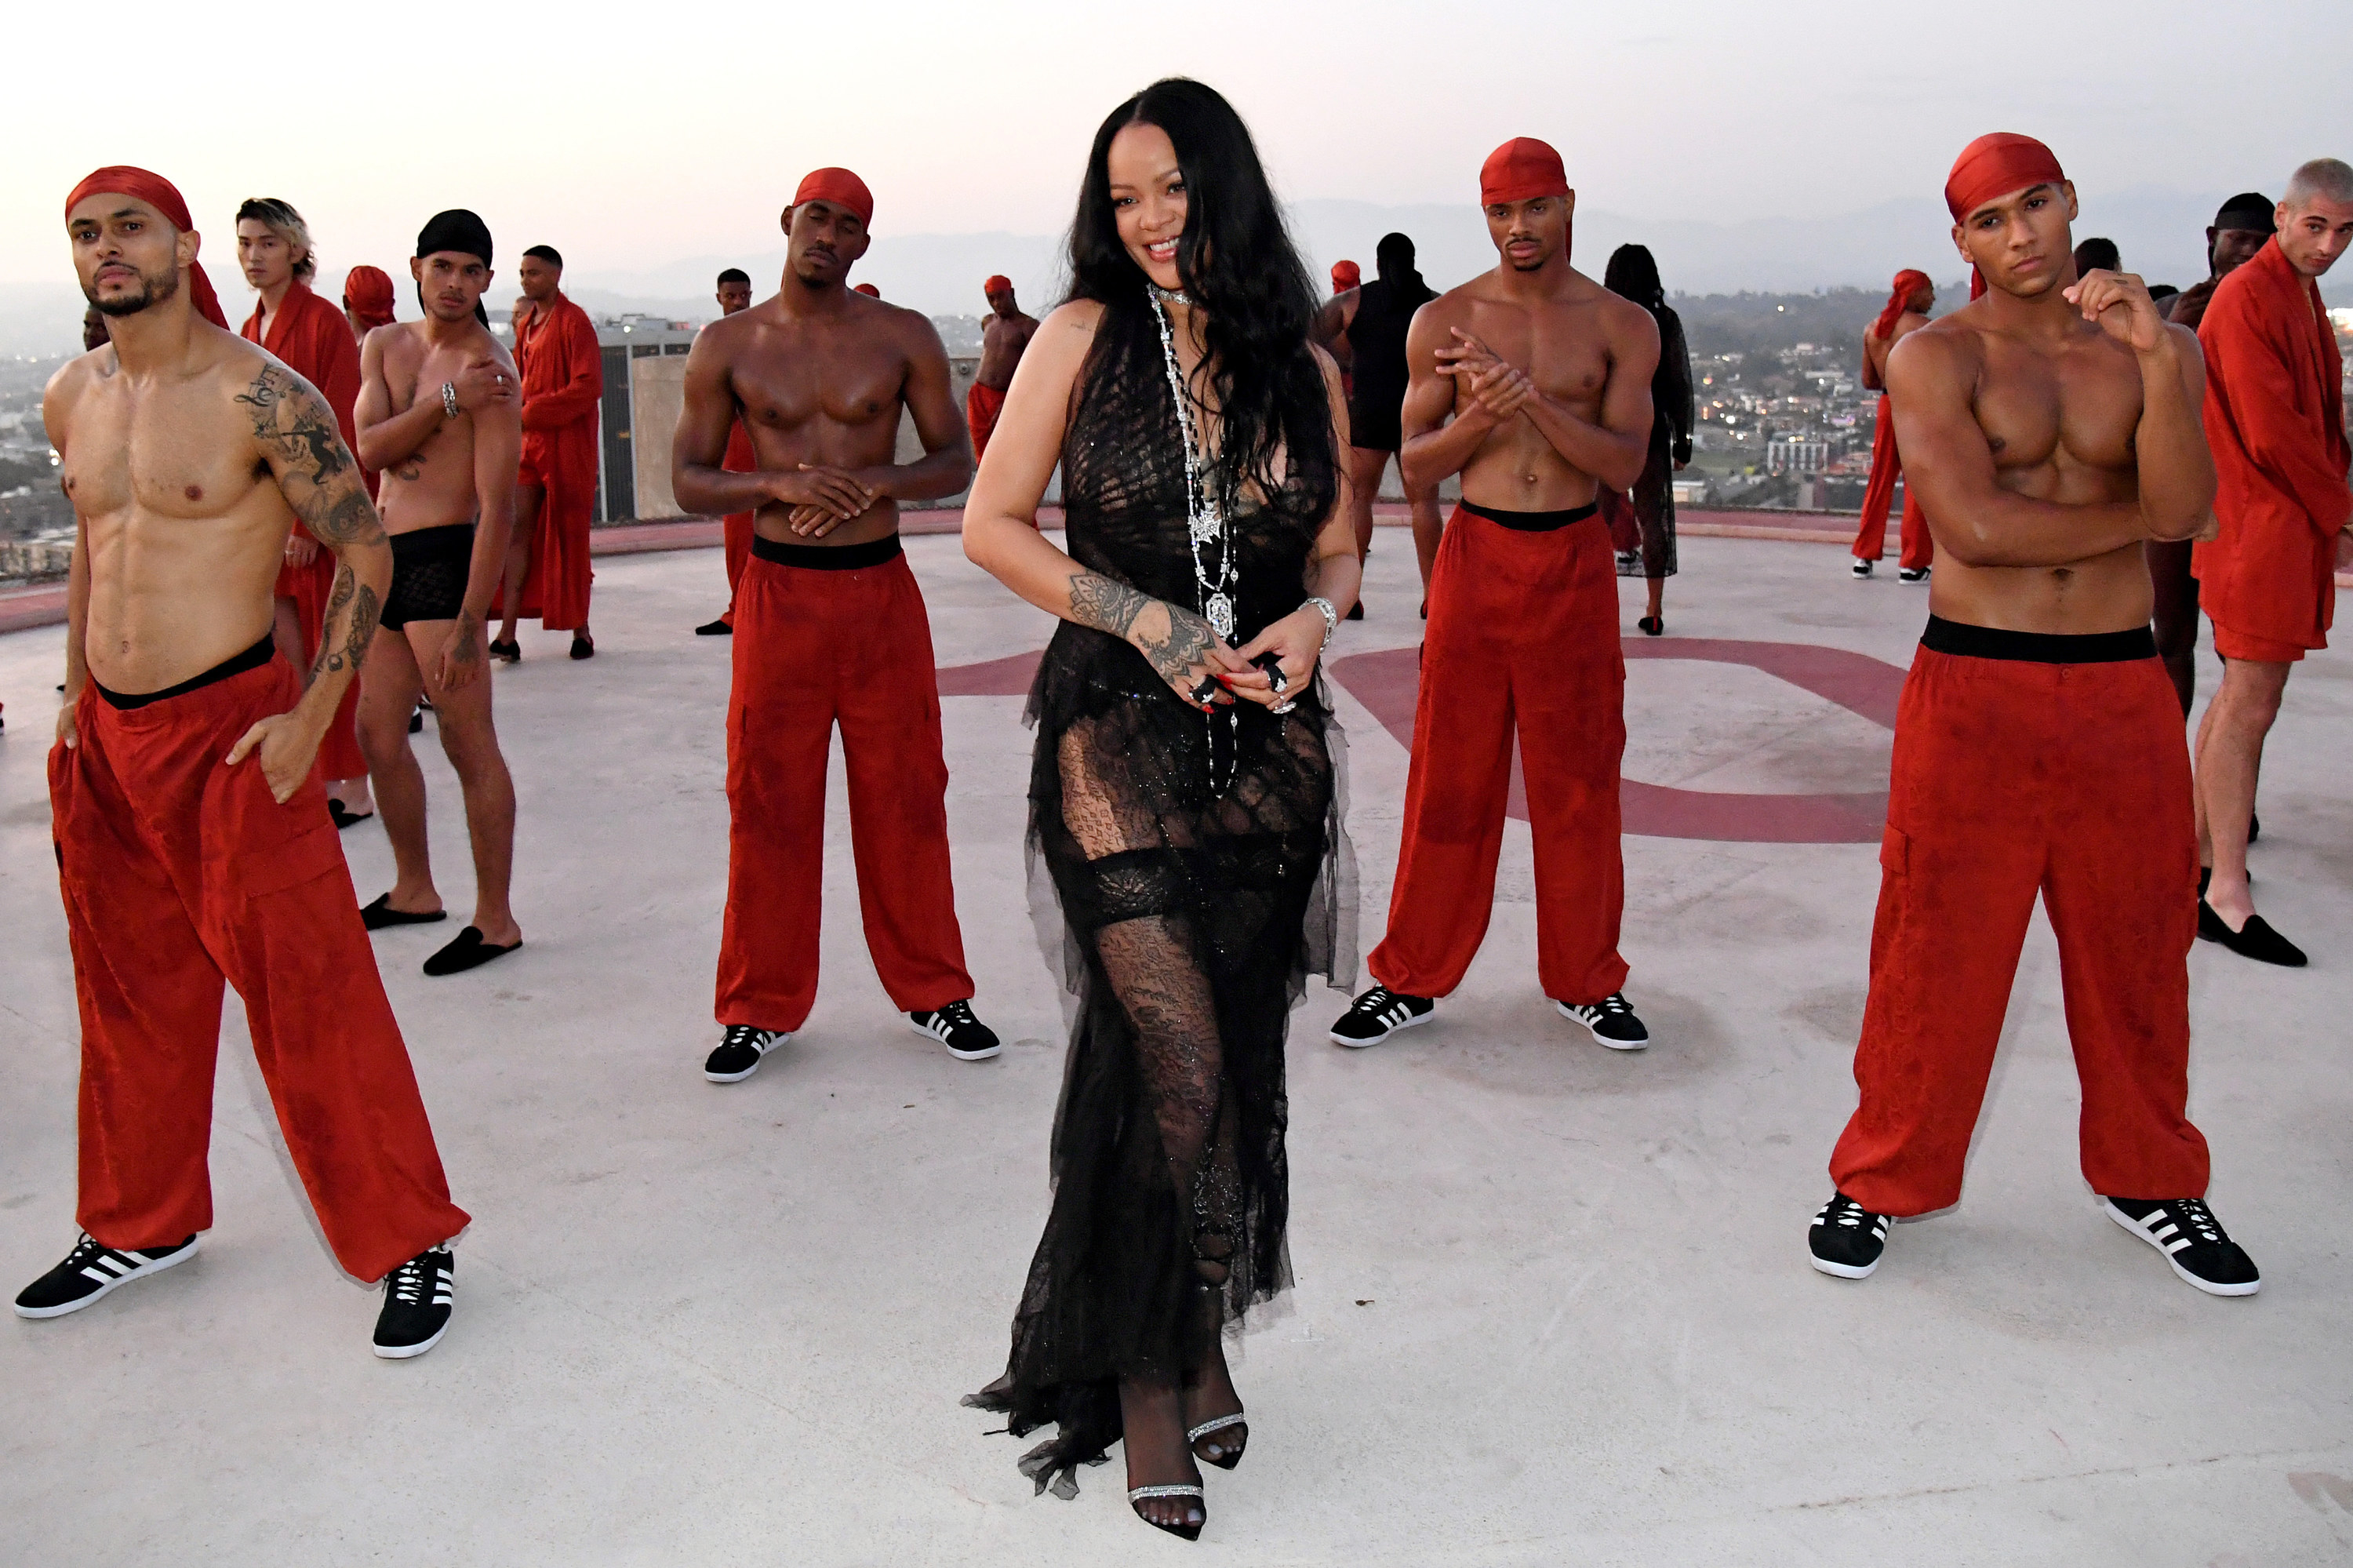 Rihanna standing in the middle of a group of shirtless people wearing matching durags and pants